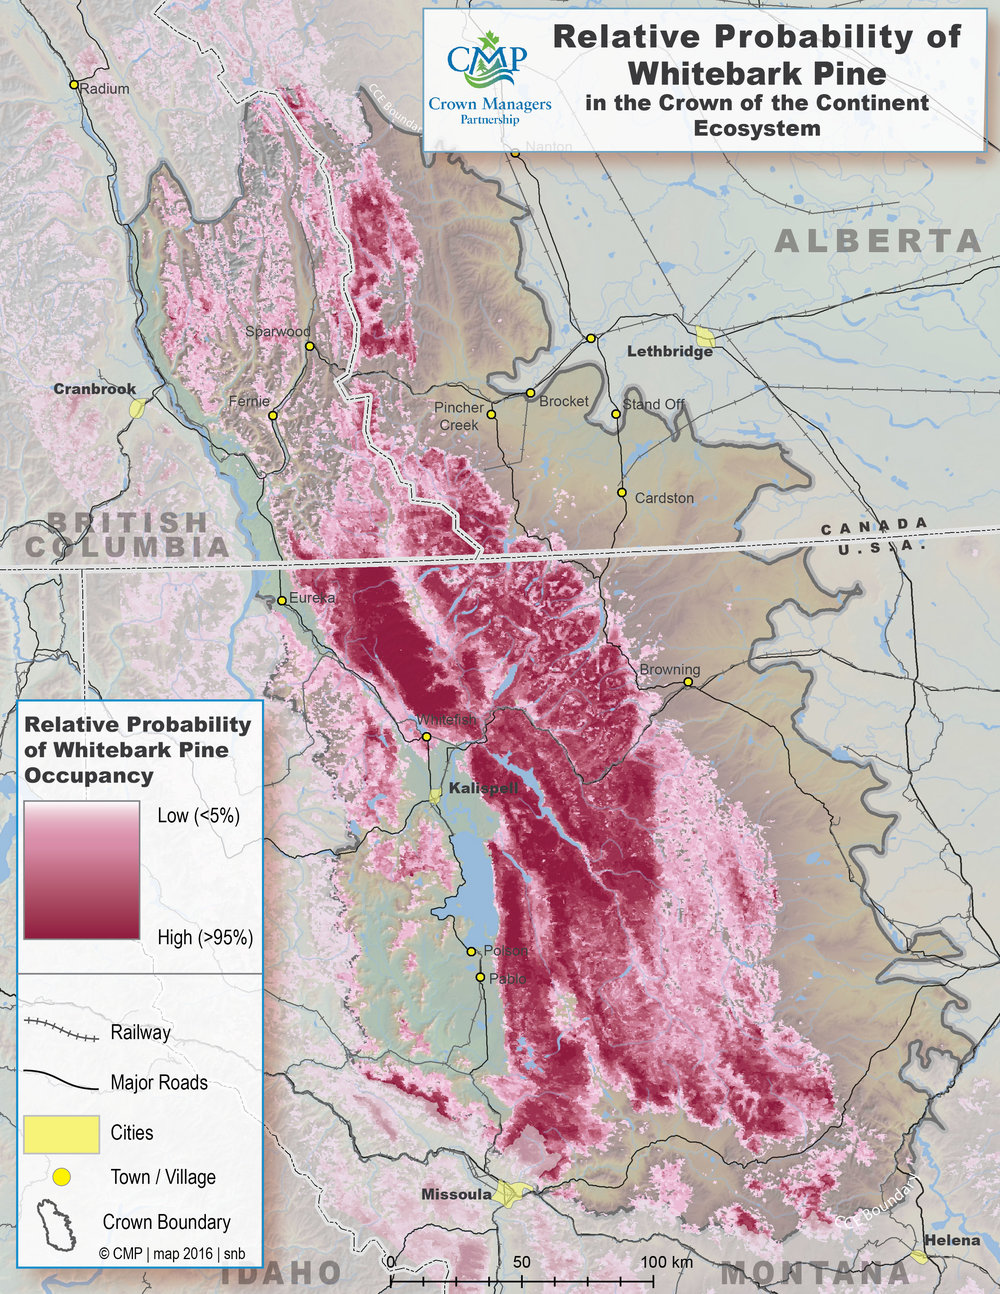 Relative Probability of Whitebark Pine in the Crown